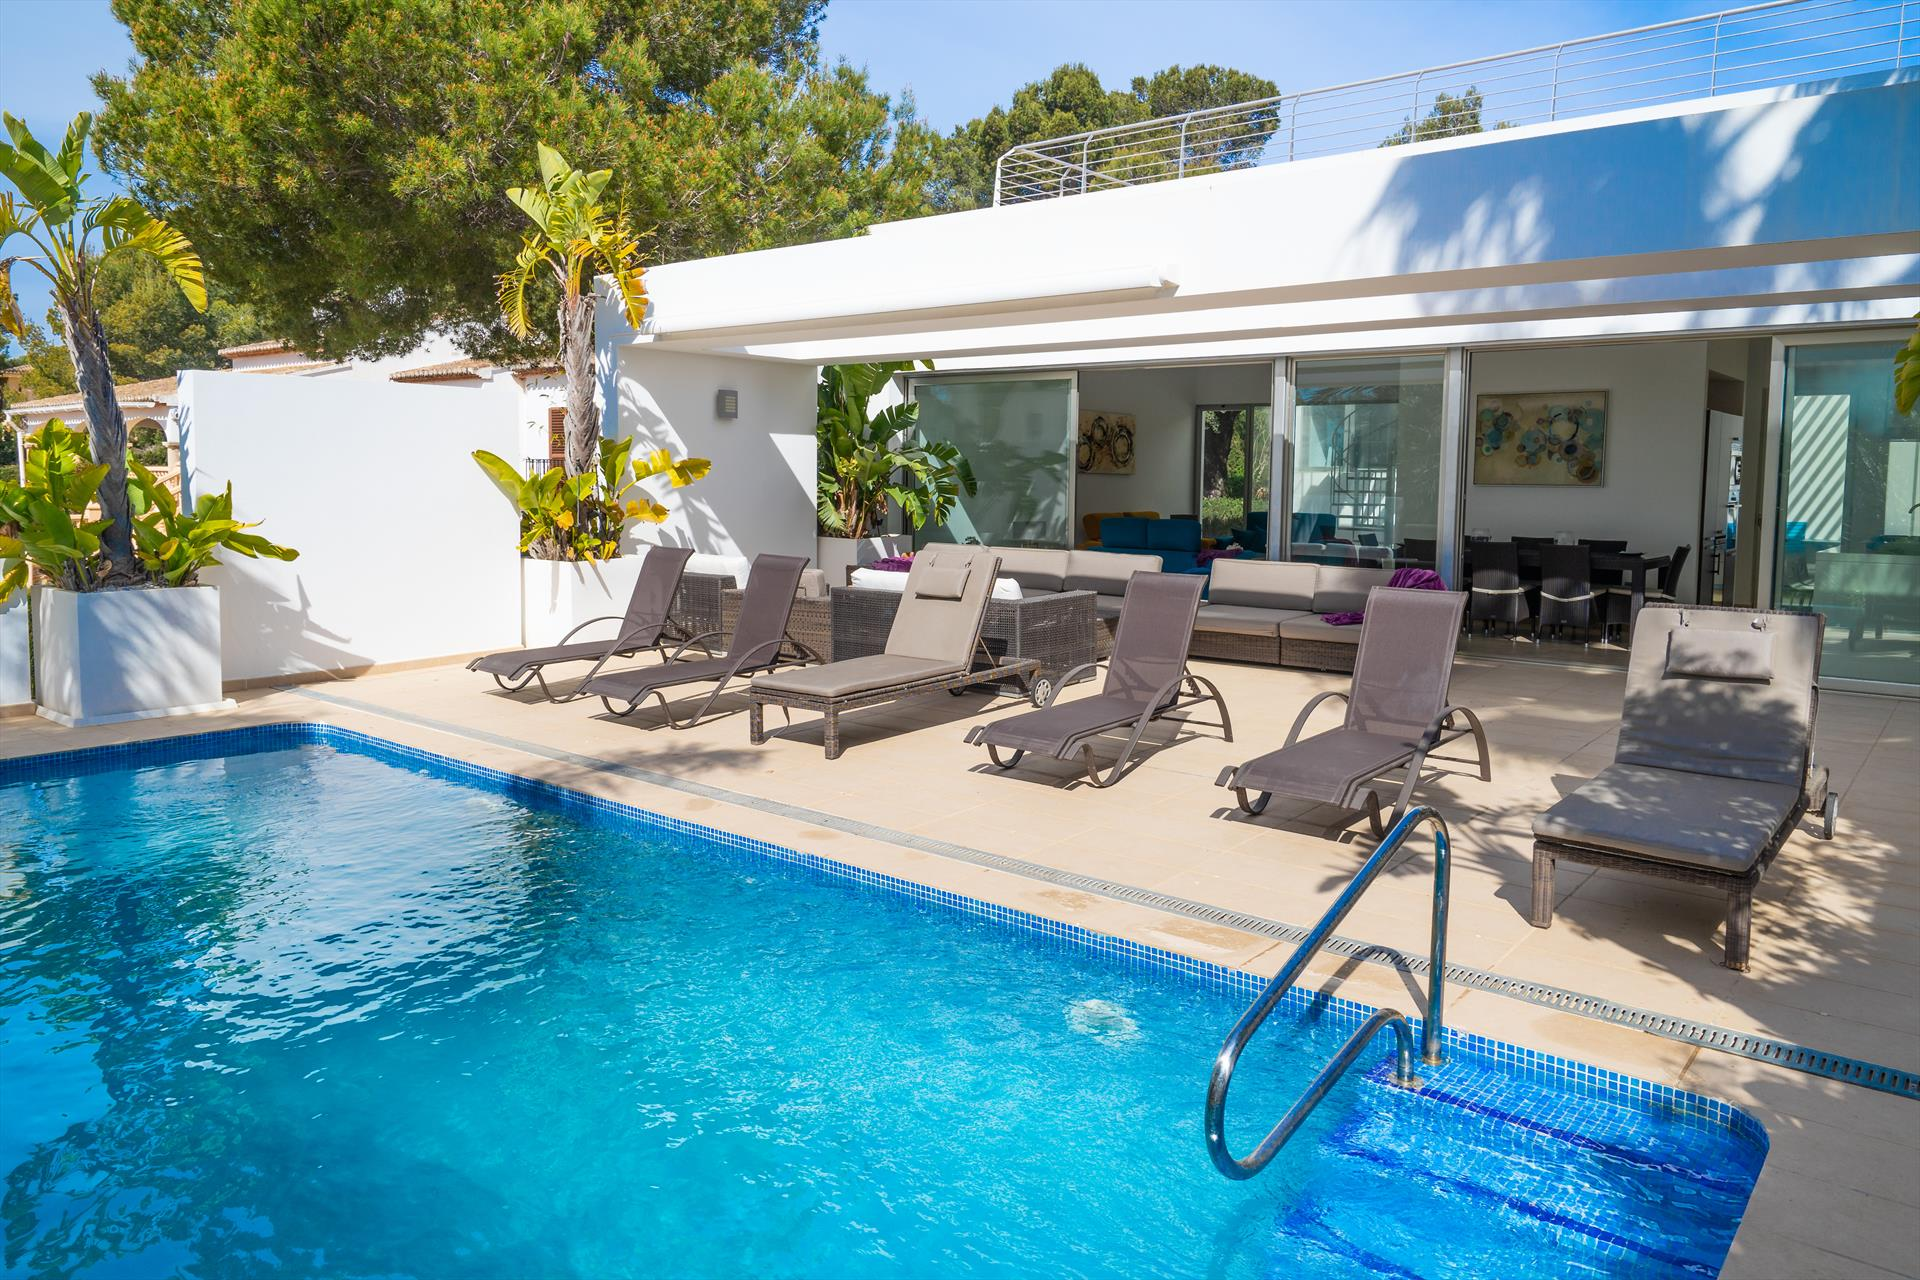 Casa Elche 6 pax, Modern and nice villa in Javea, on the Costa Blanca, Spain  with heated pool for 6 persons.....